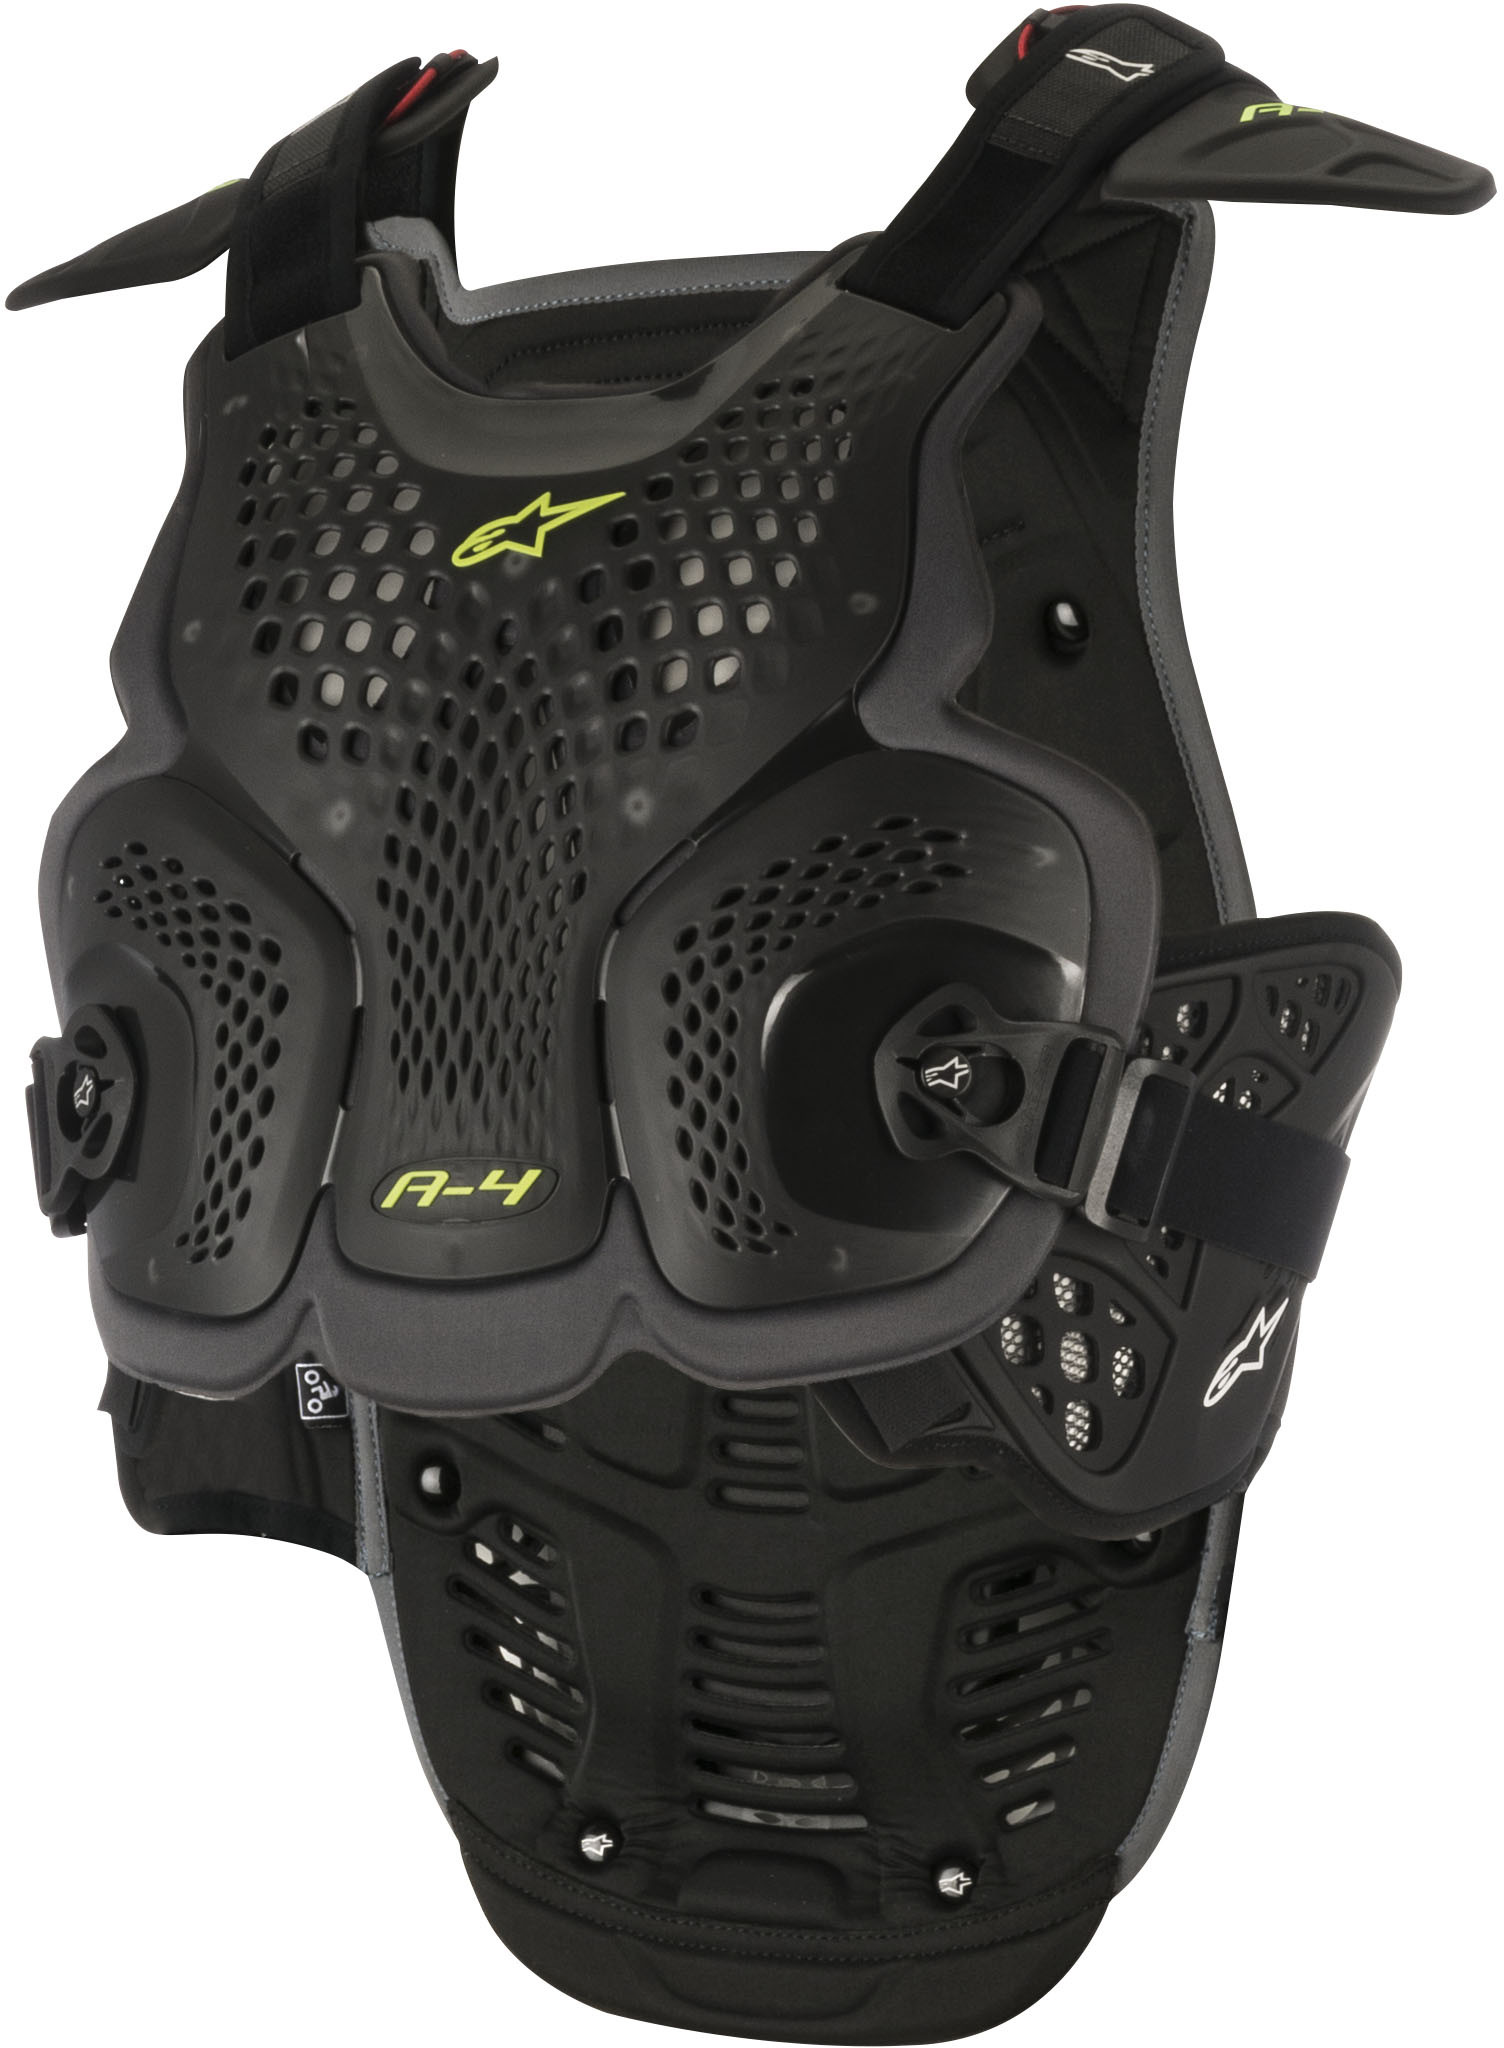 A-4 Chest Protector Black/Anthracite M/L